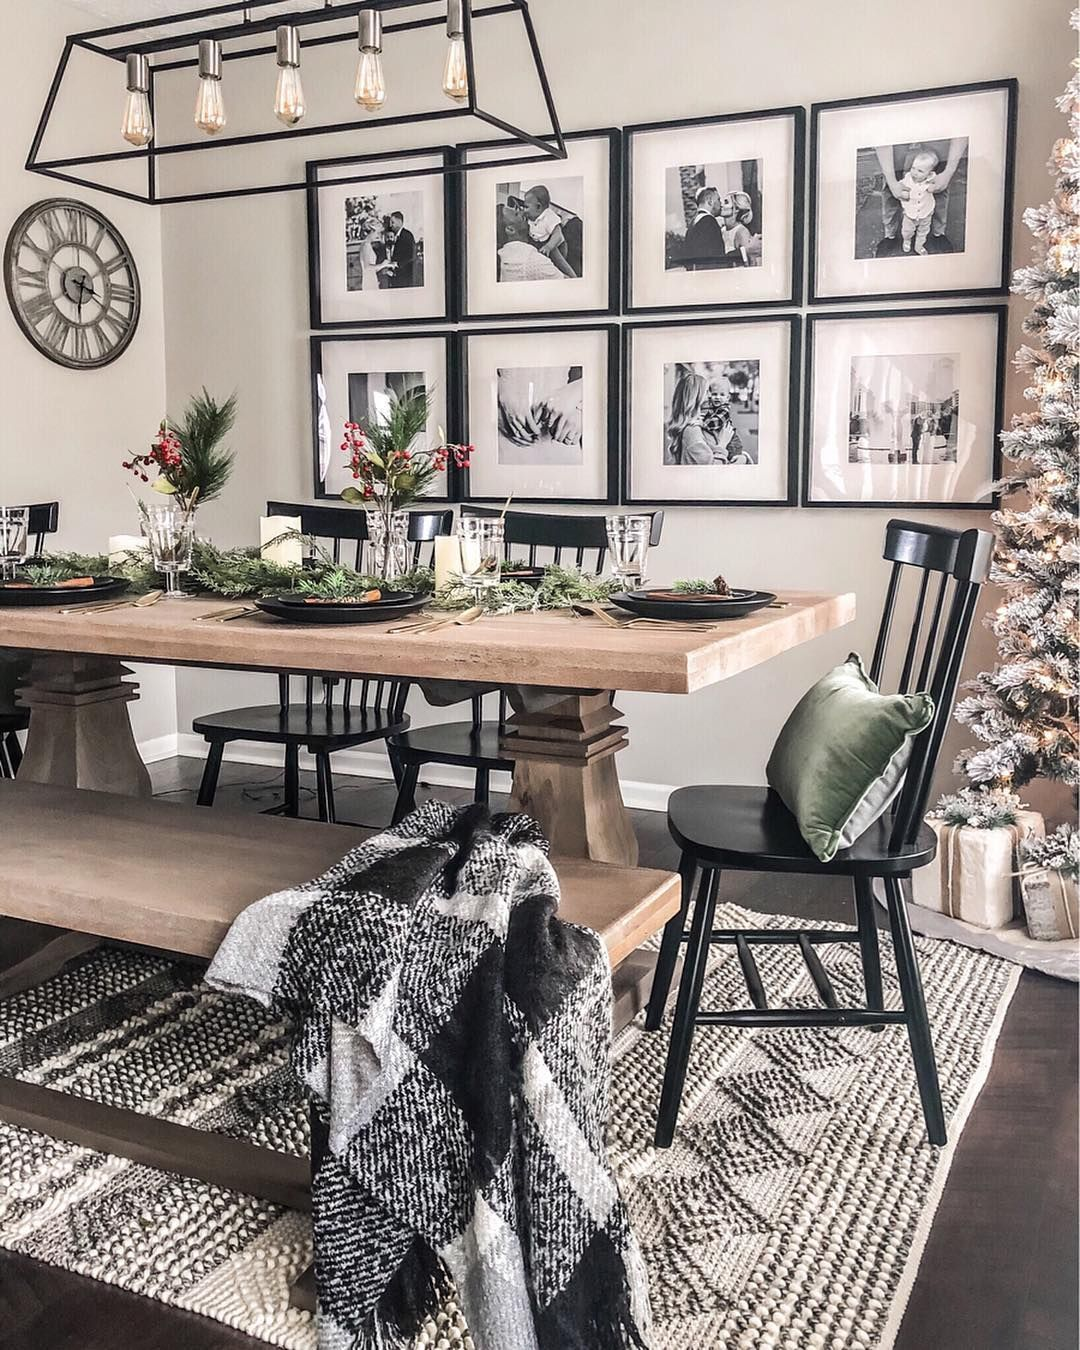 29+ Best Dining Room Wall Decor Ideas 2018 (Modern amp Contemporary)    25+ Casual Dining Room Wa